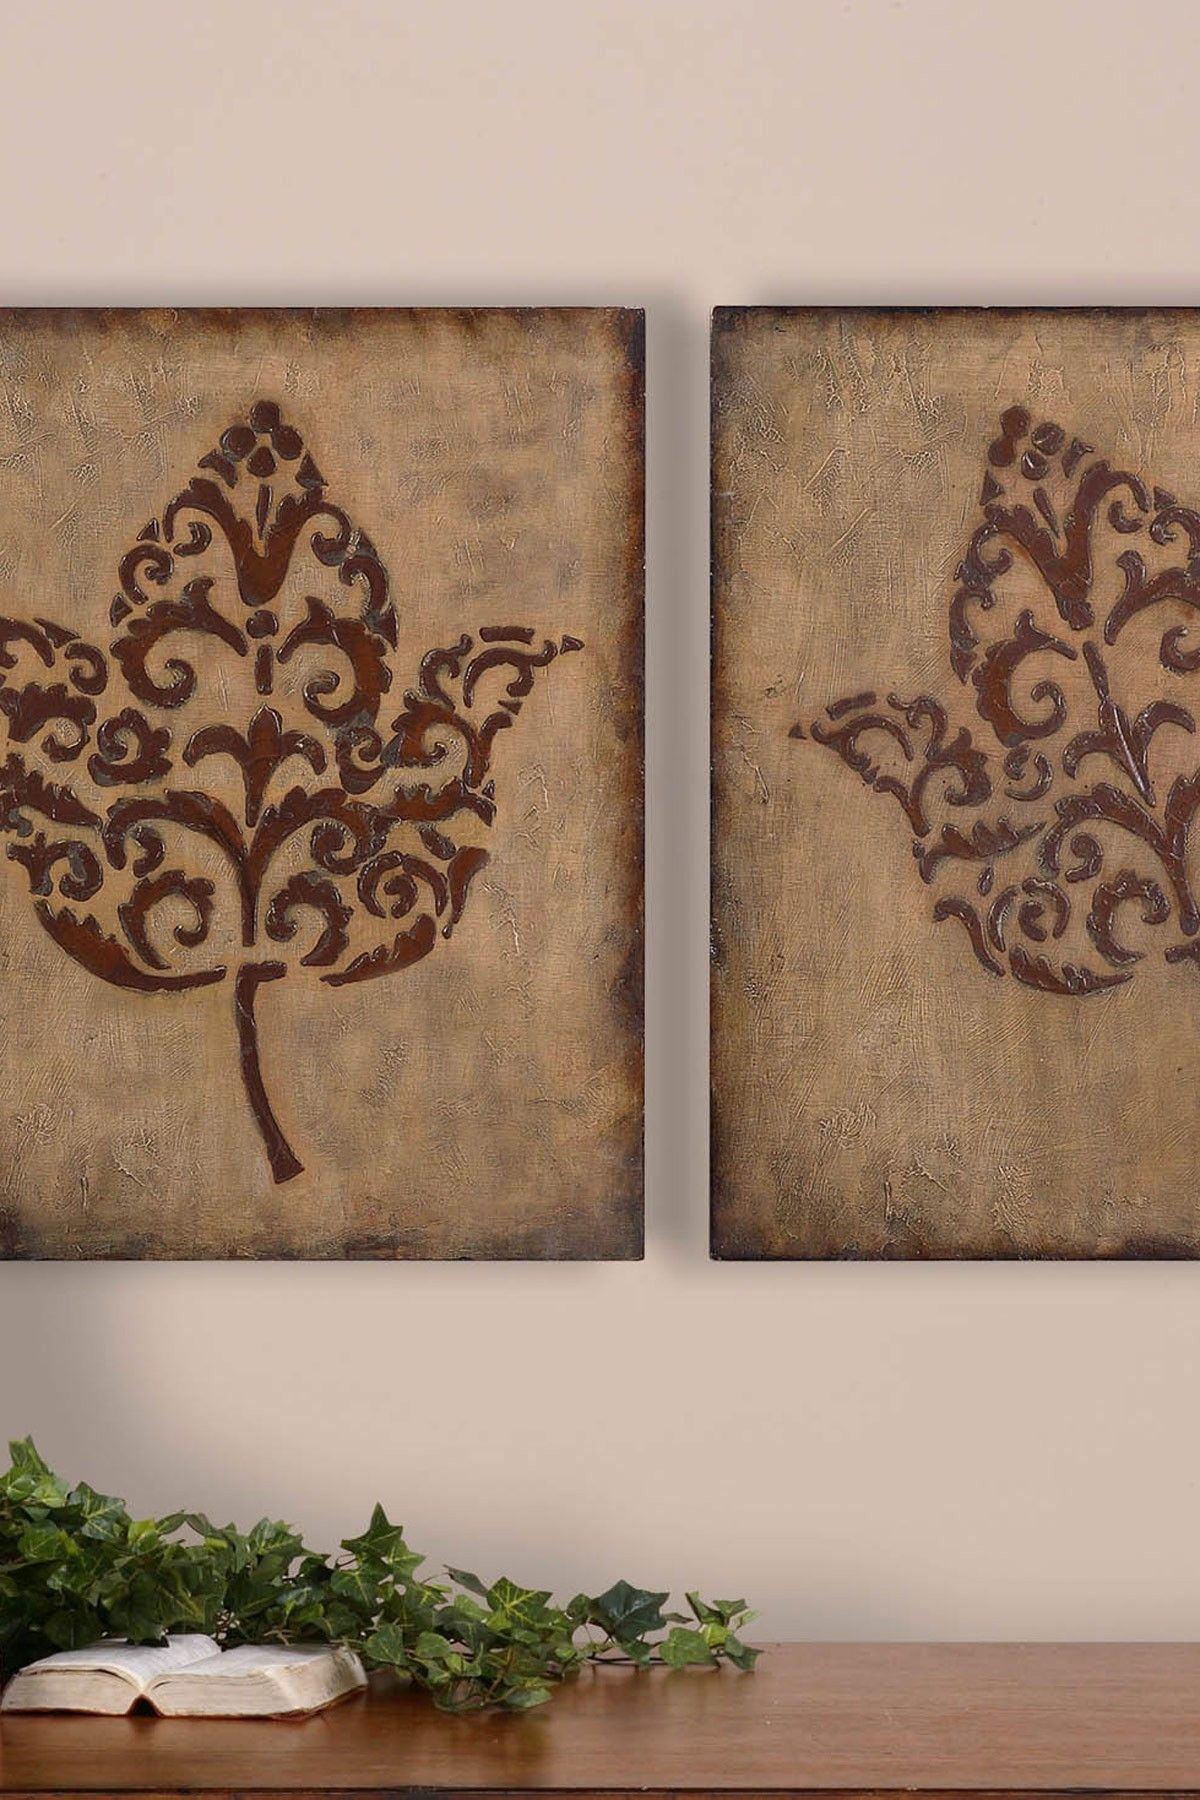 Decorative Leaf Wall Panels | Craft & Diy | Decorative Inside 2 Piece Panel Wood Wall Decor Sets (set Of 2) (View 22 of 30)